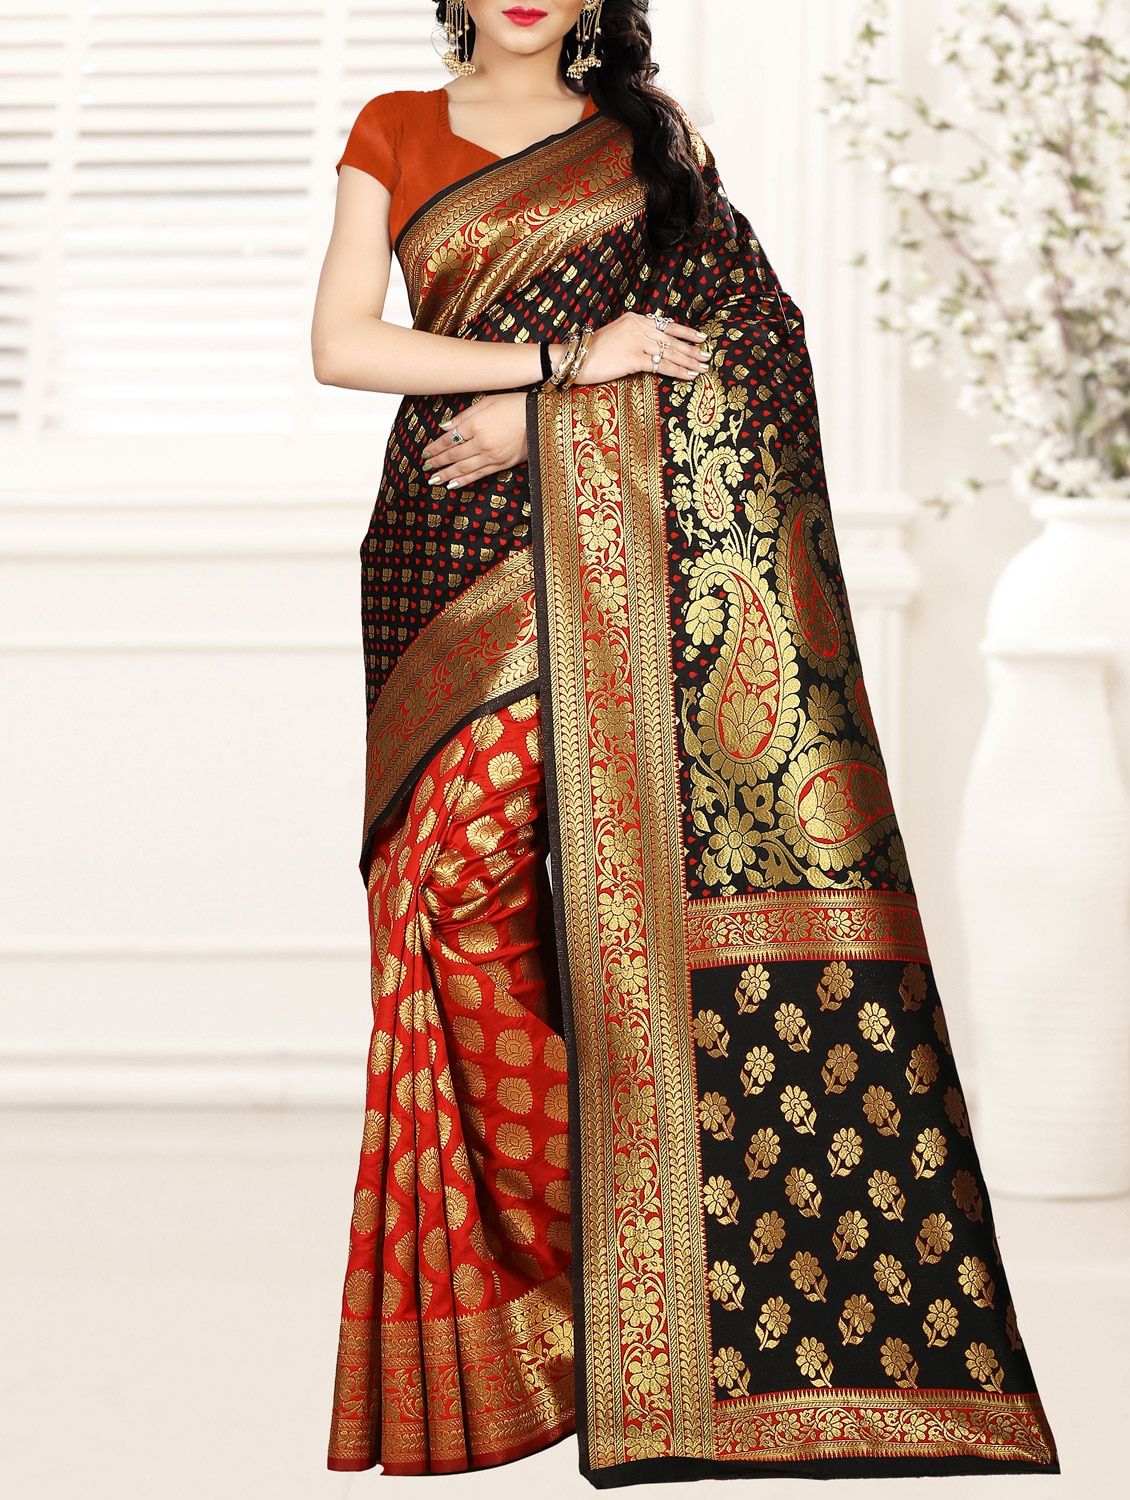 3d3efba5e013f Buy Half   Half Zari Banarasi Saree With Blouse for Women from Manvaa for  ₹2516 at 46% off